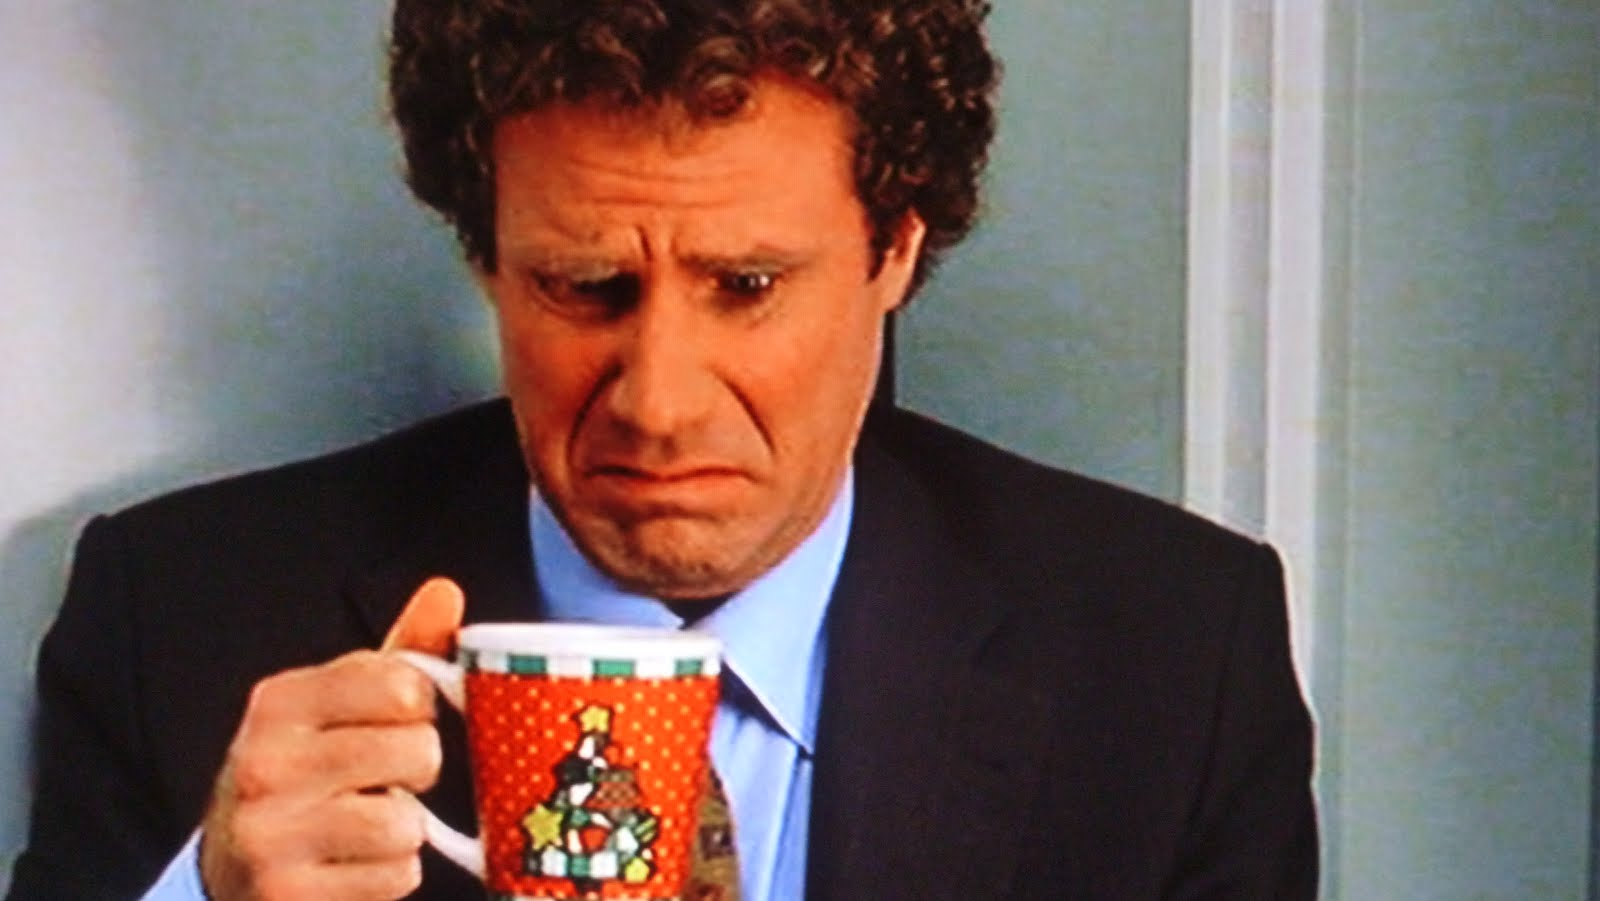 Black Coffee Drinkers Are More Likely To Be Sadists and Psychopaths